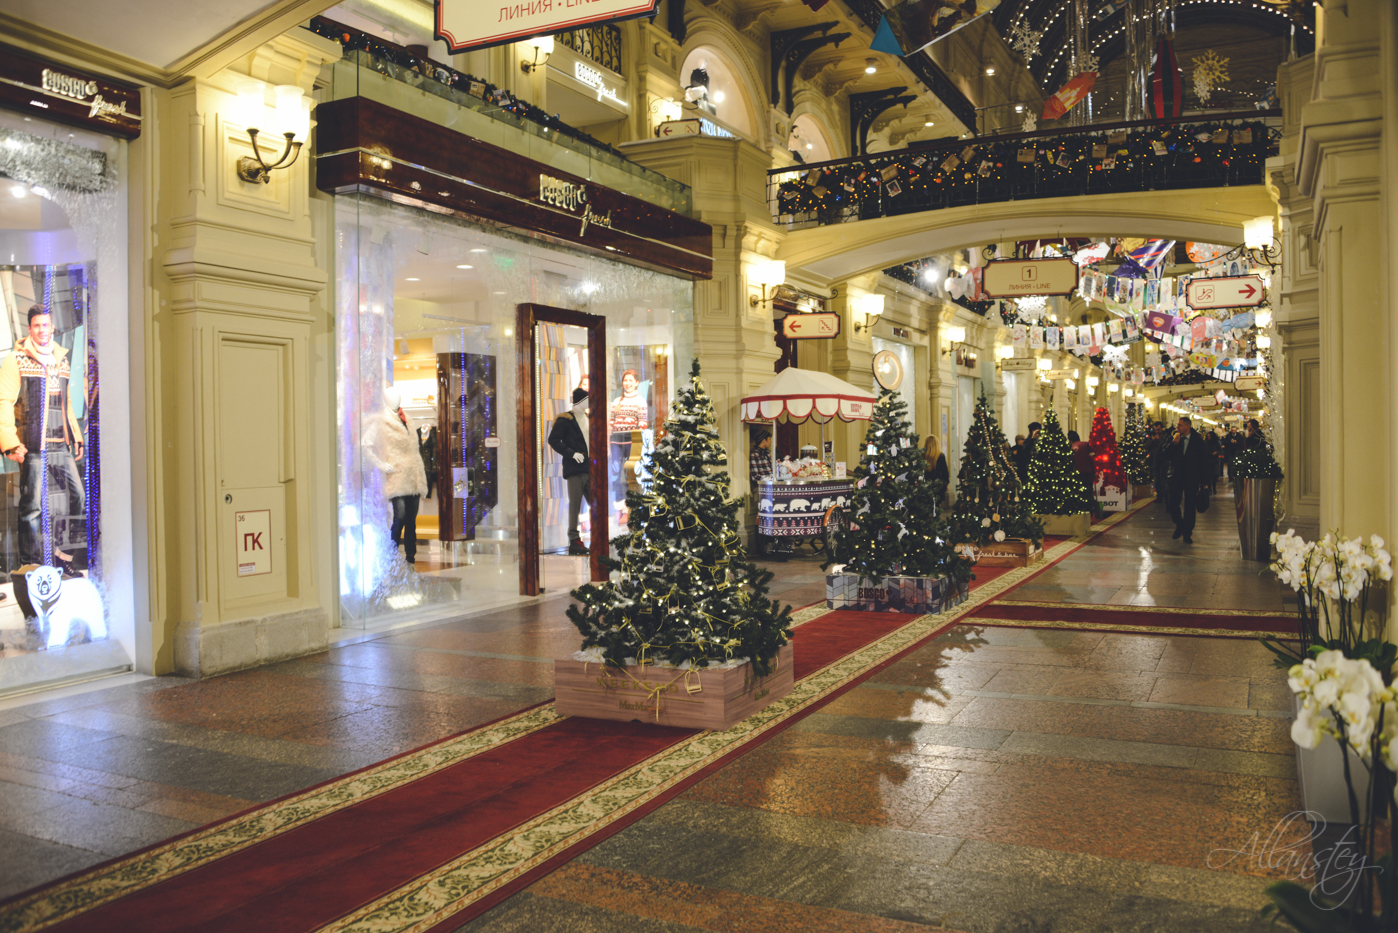 Christmas trees exhibition in Gum, Moscow, Russia.